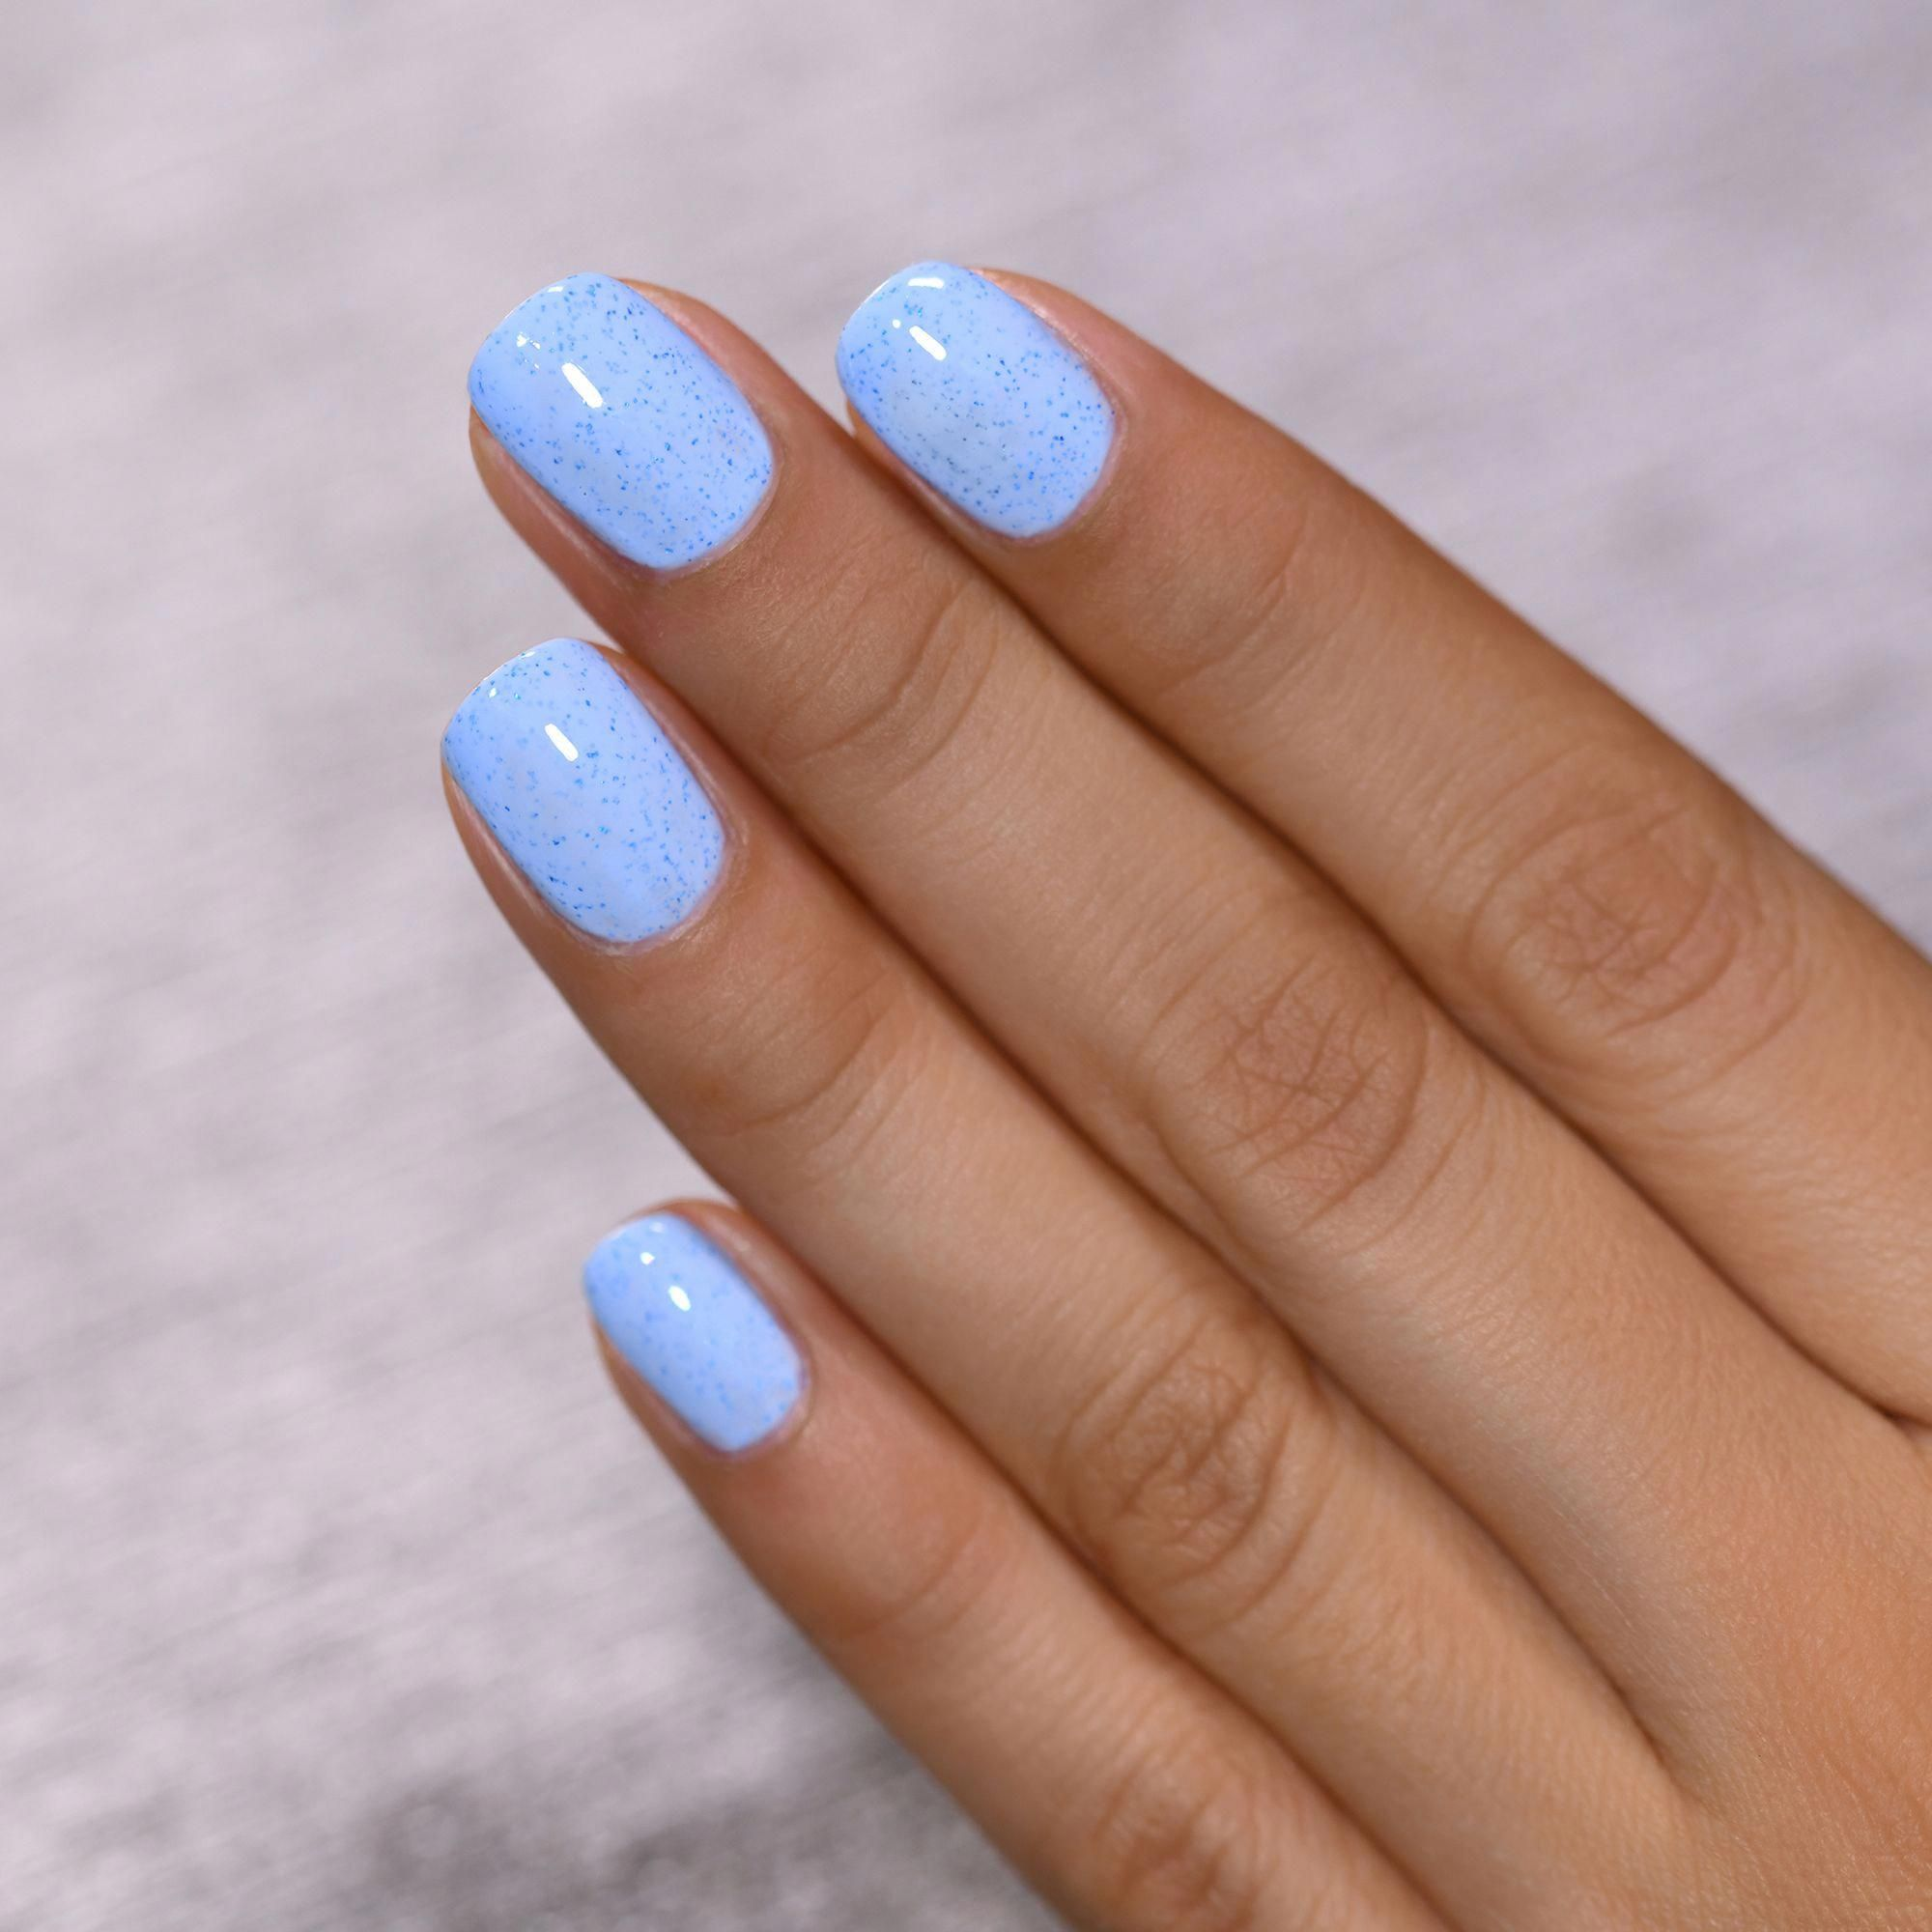 Acrylicnailsalmond In 2020 Summer Gel Nails Blue Acrylic Nails Short Acrylic Nails